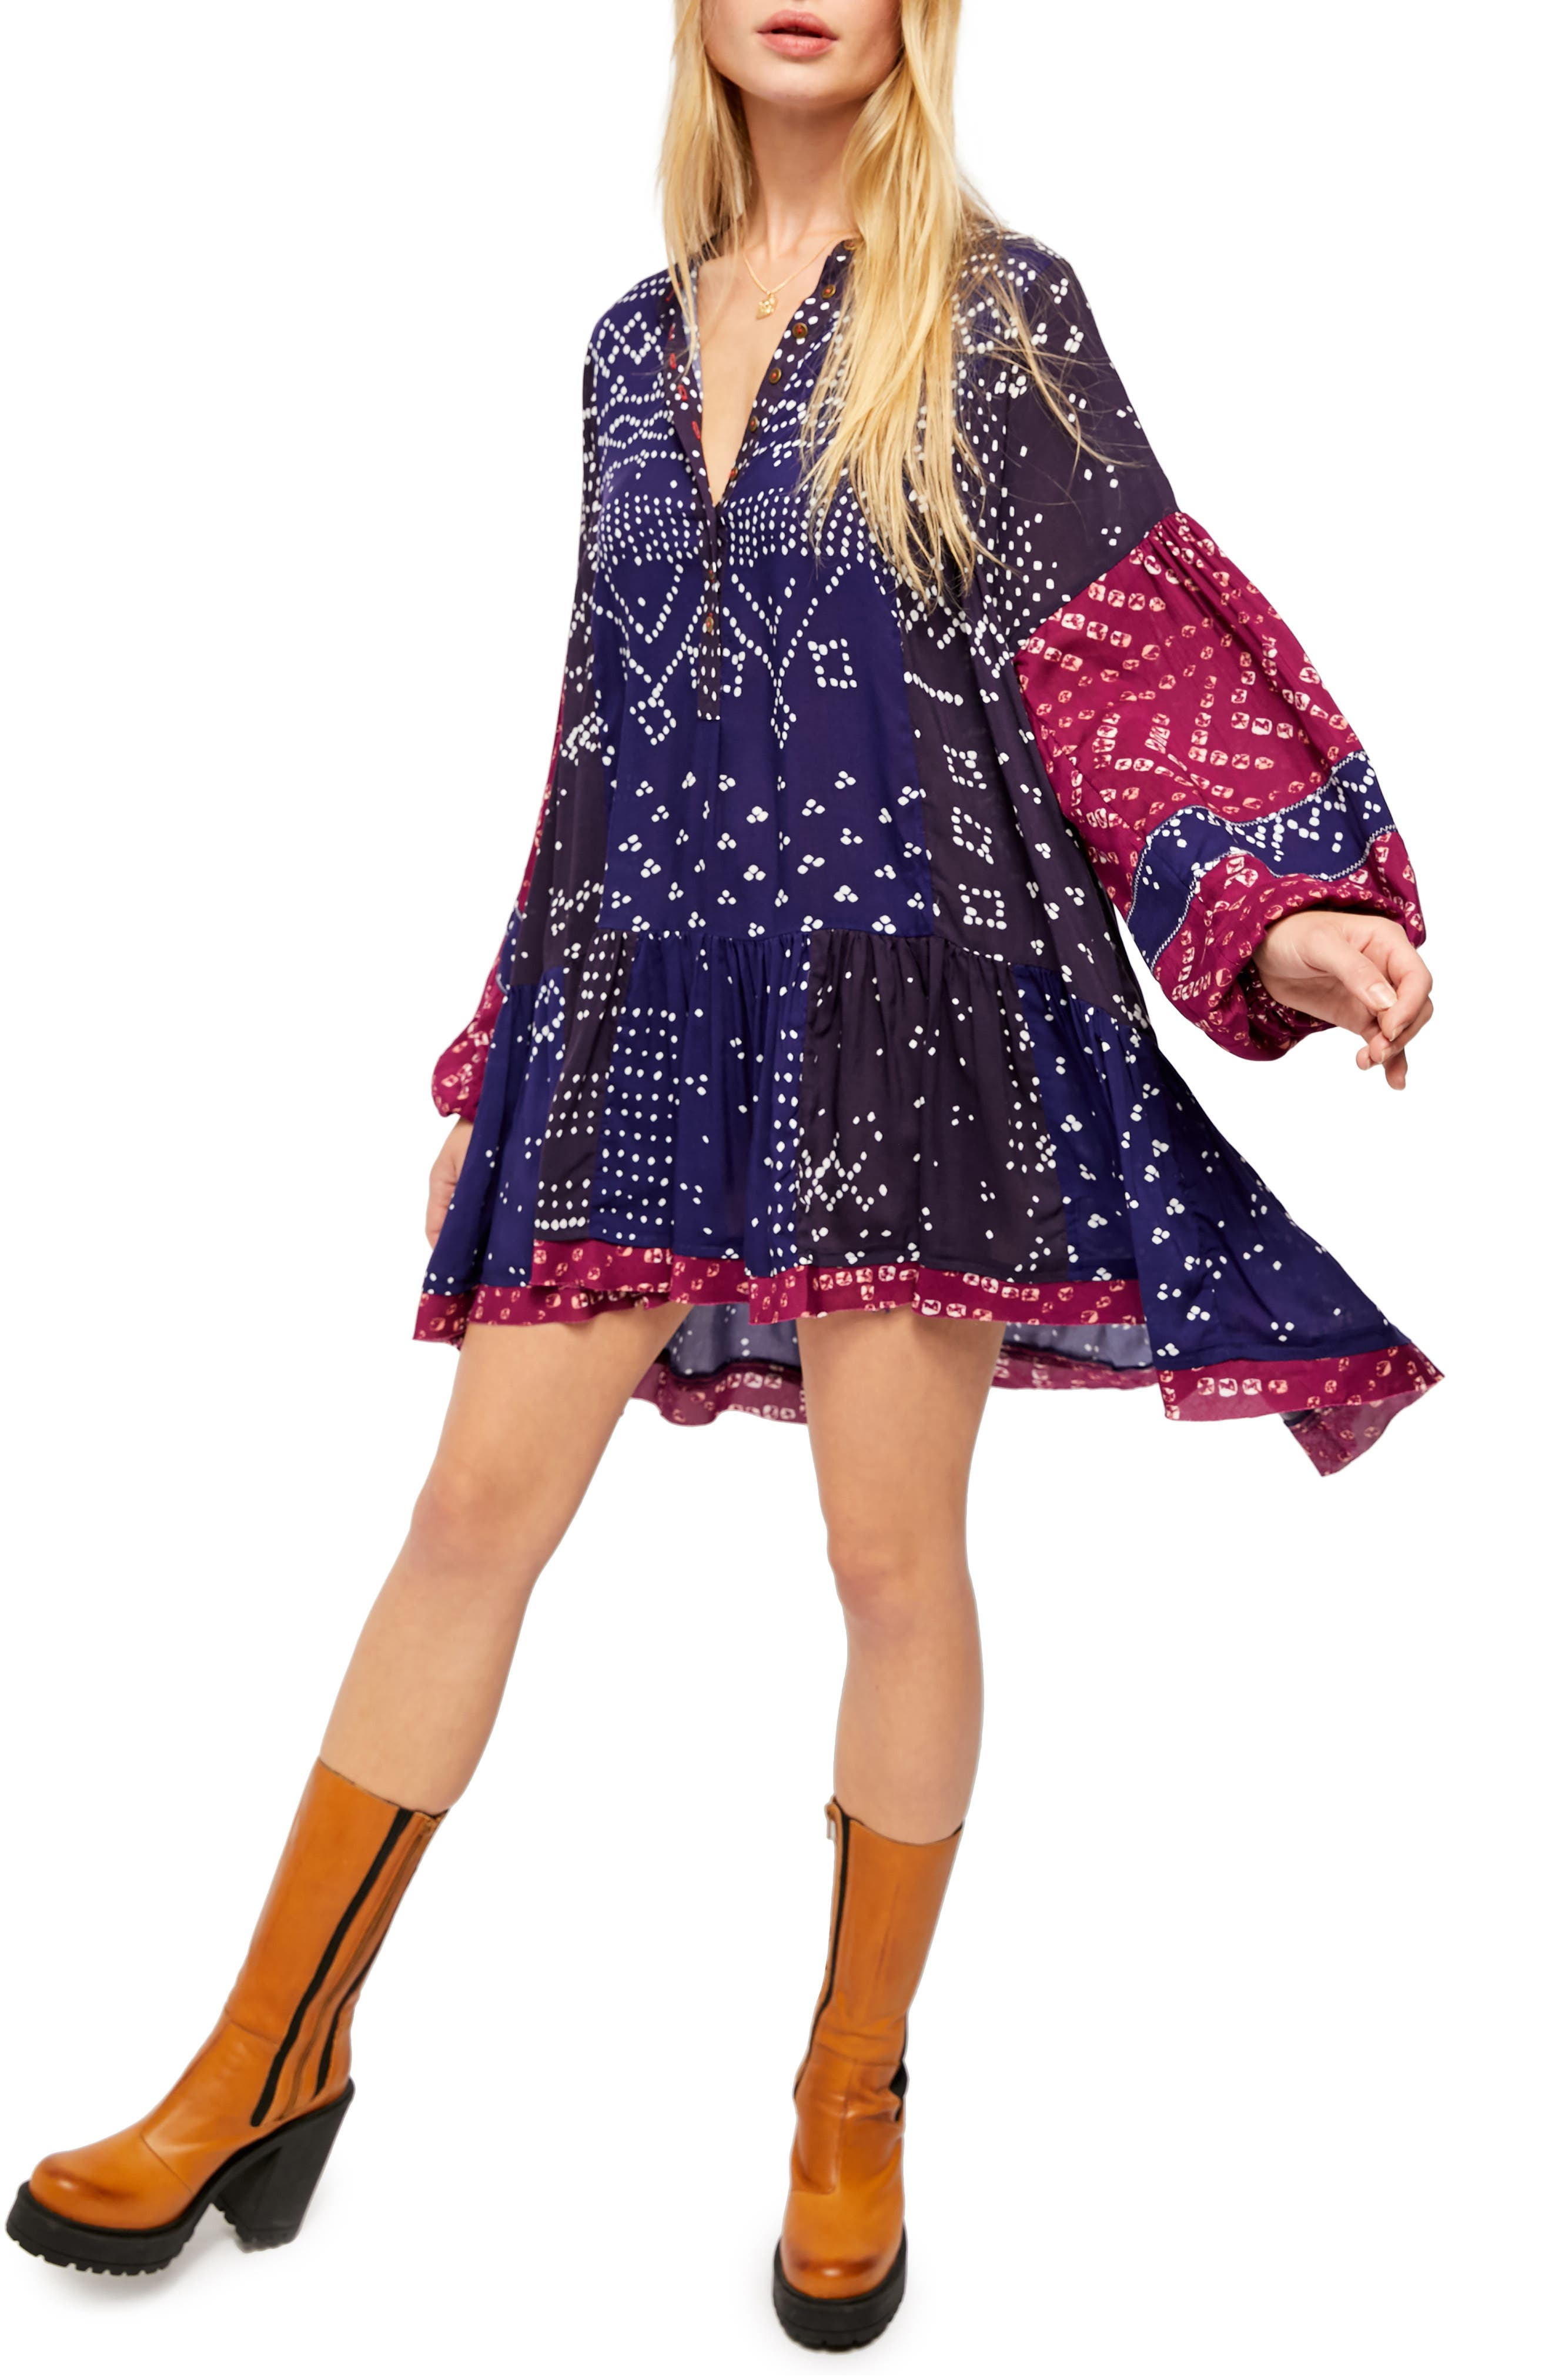 Let your free spirit shine in this drapey ruffle-hem tunic styled with billowed sleeves and a lively boho print. Style Name: Free People Shibori Long Sleeve Tunic Dress. Style Number: 6011072. Available in stores.